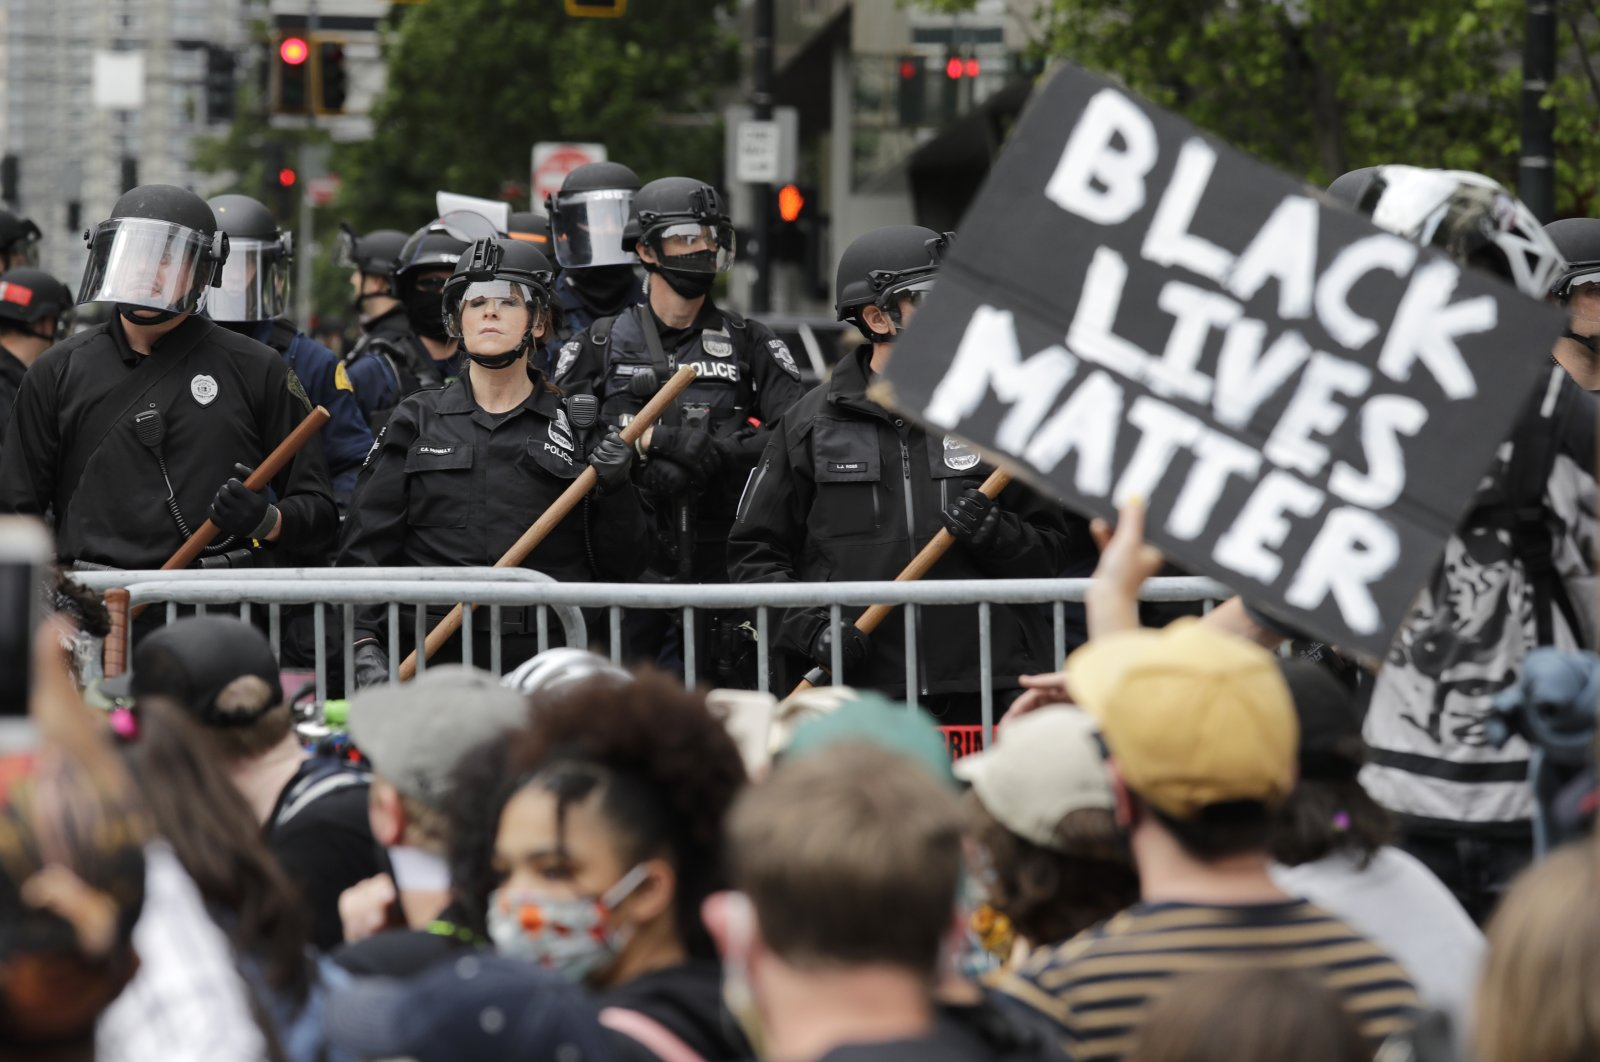 Police officers behind a barricade look on as protesters fill the street in front of Seattle City Hall, following protests over the death of George Floyd, a black man who was killed in police custody in Minneapolis, Seattle, Washington, U.S., June 3, 2020. (AP Photo)